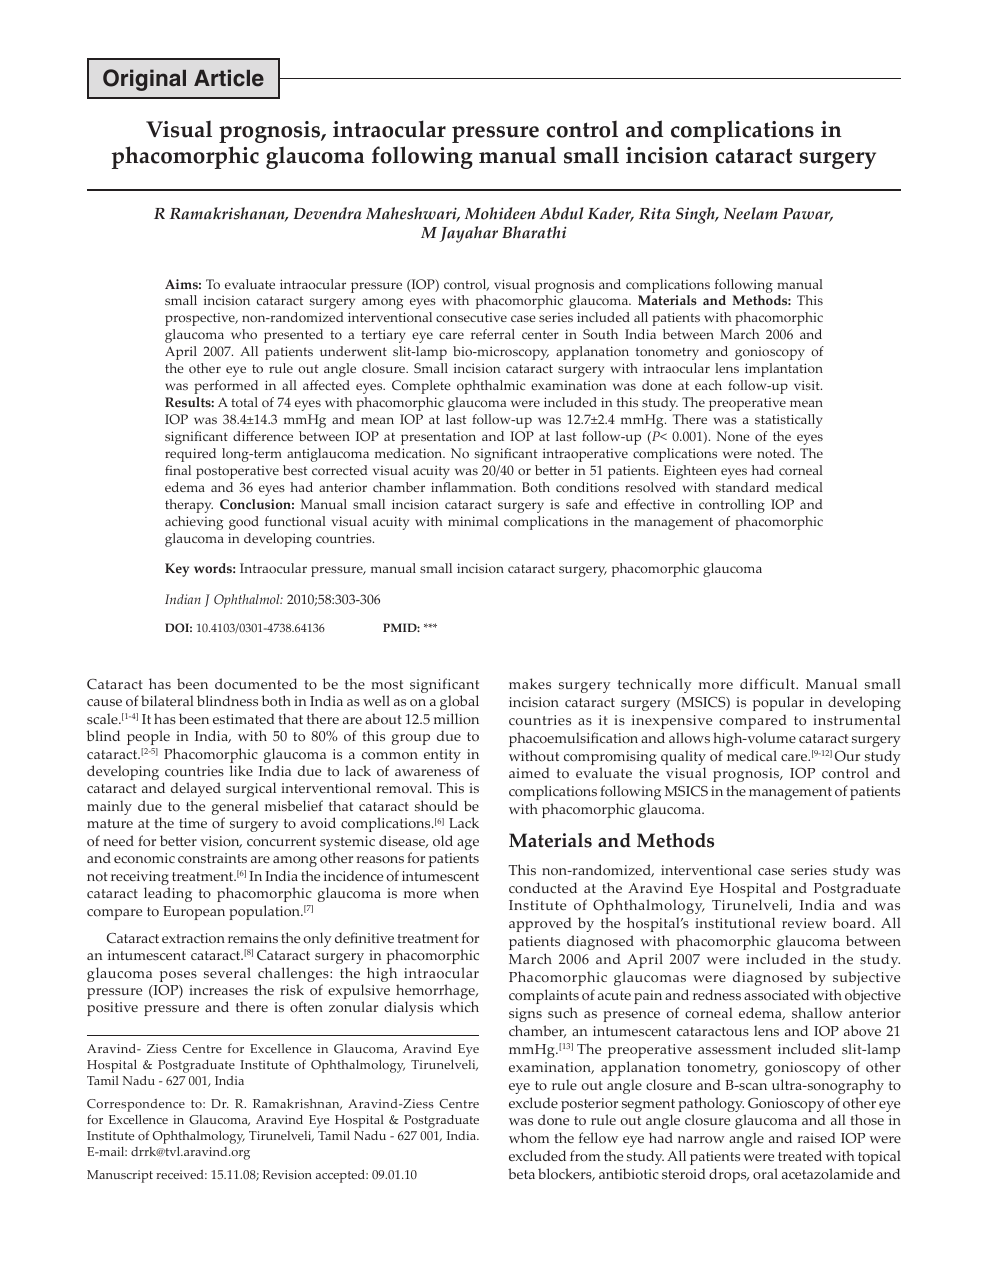 Visual Prognosis Intraocular Pressure Control And Complications In